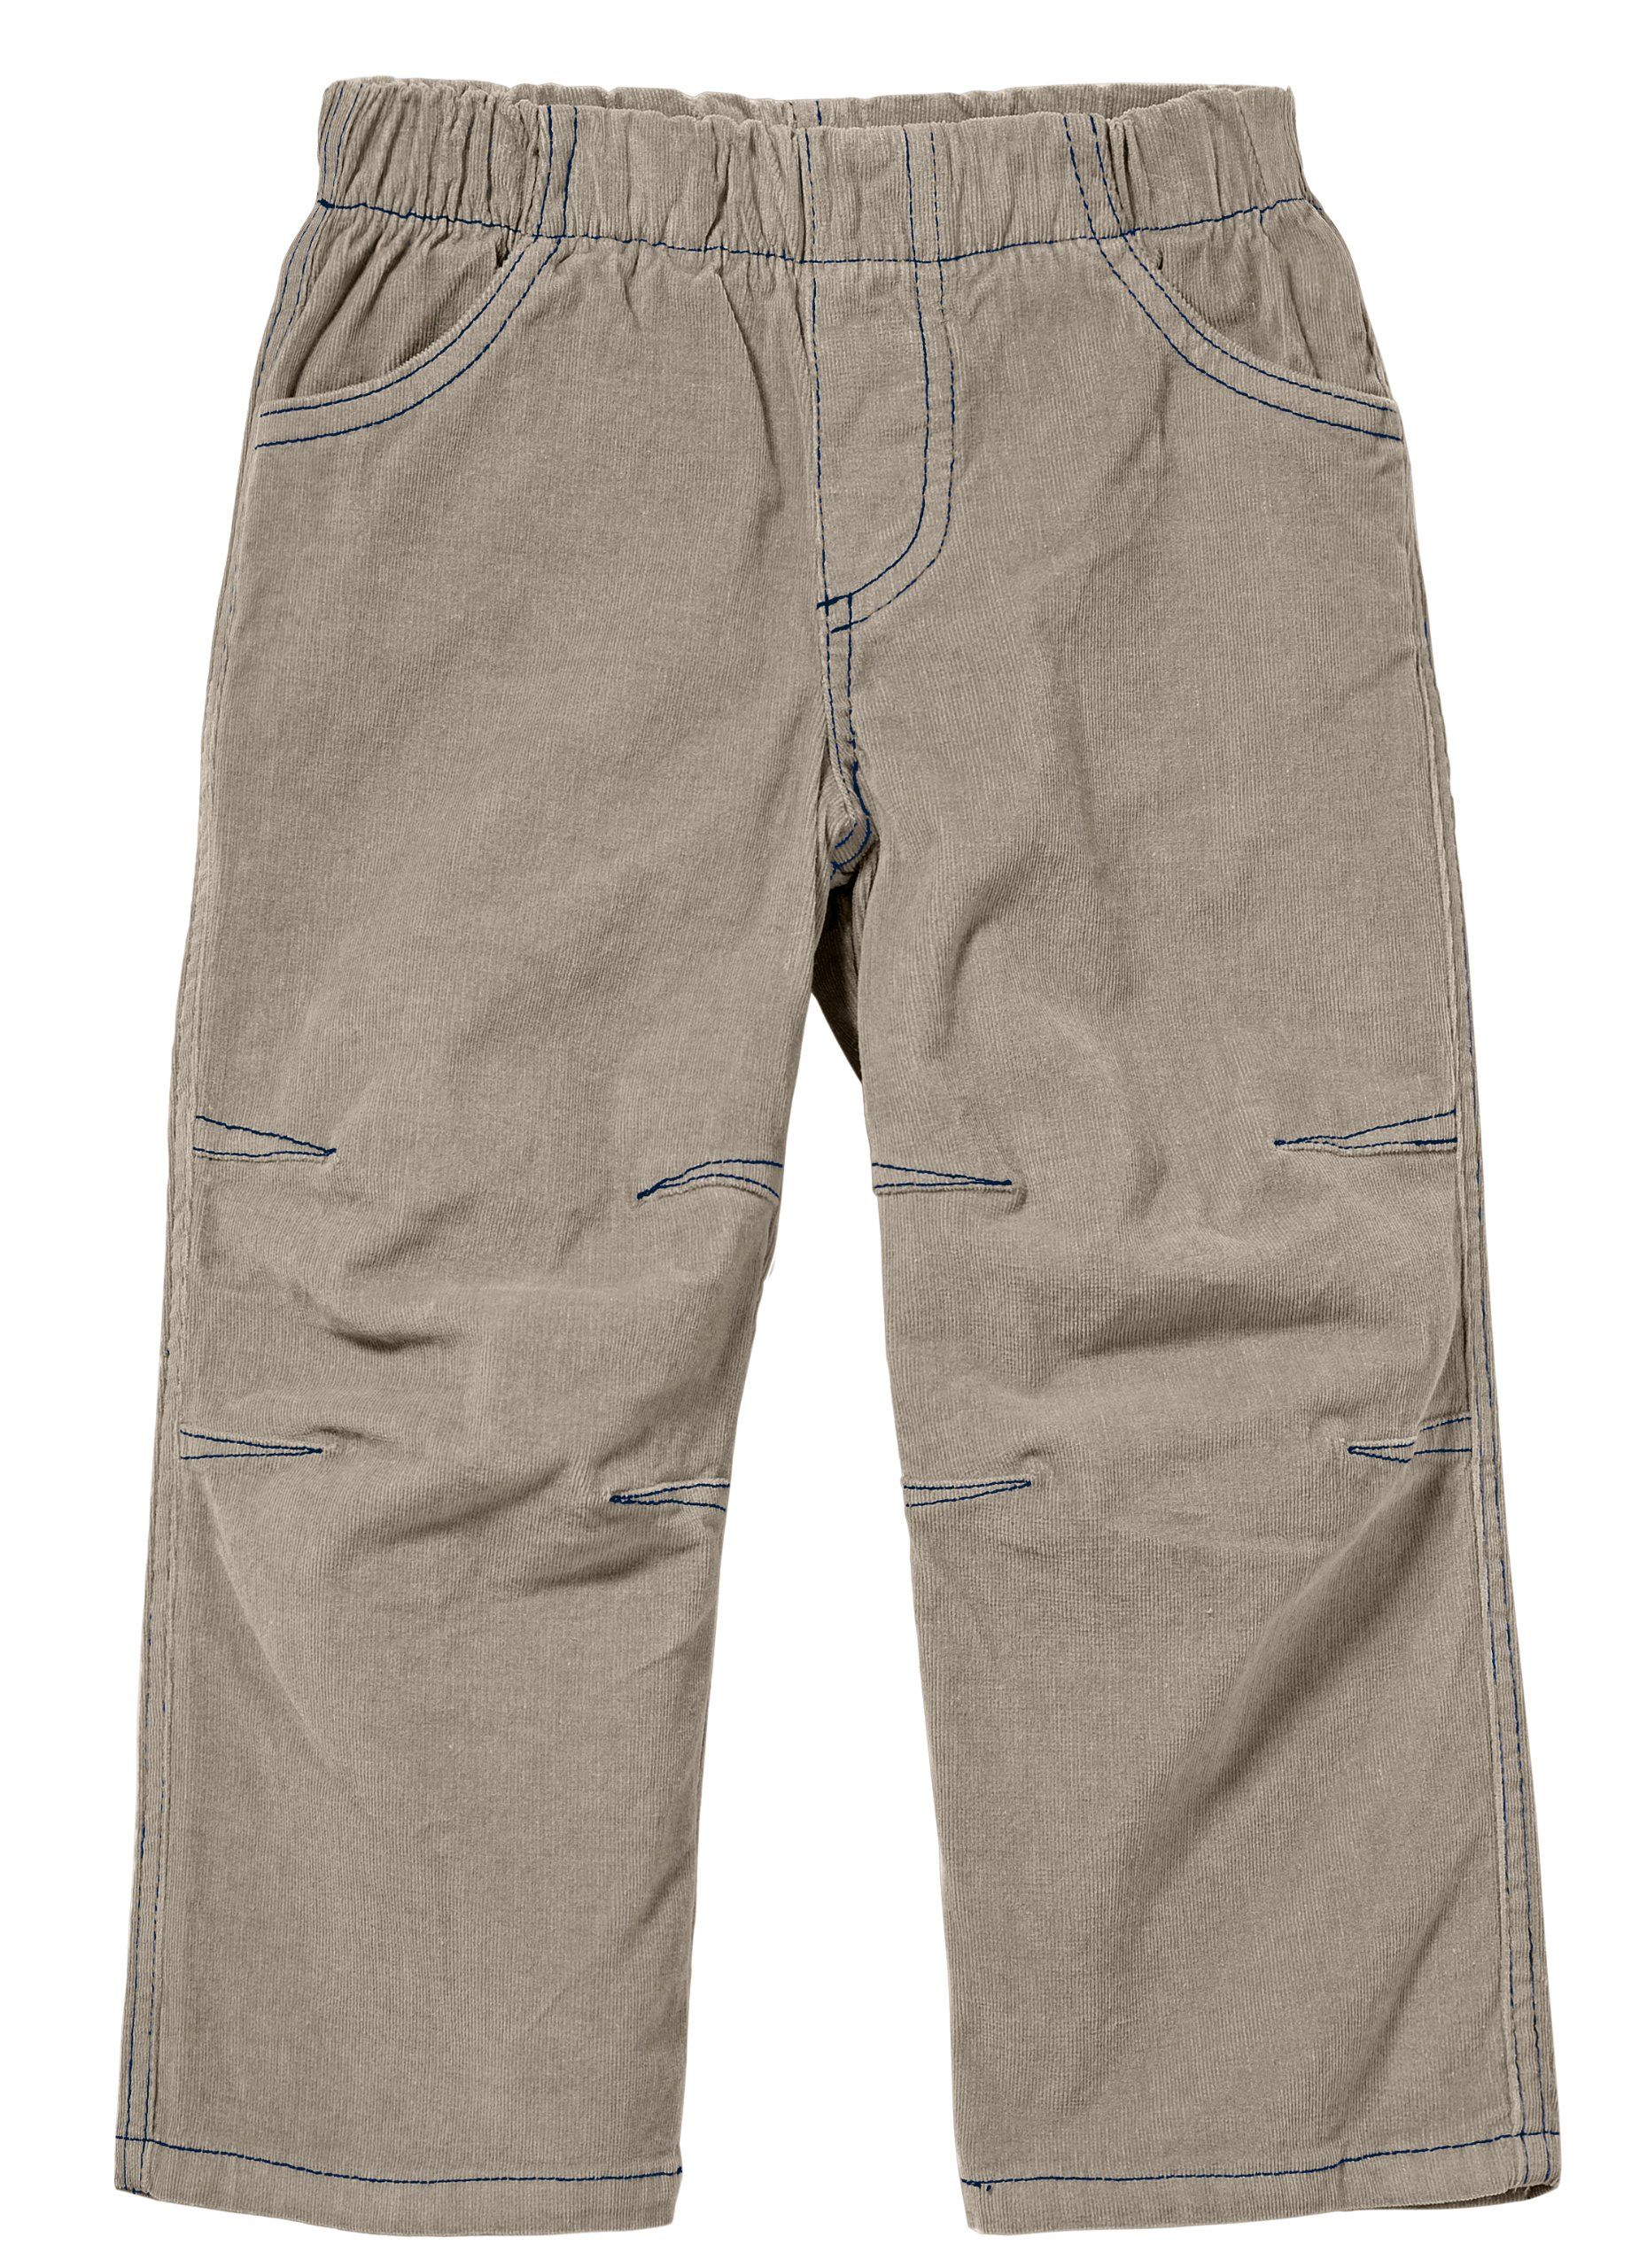 City Threads Boys' Corduroy Pull-Up Pants for School or Play; Comfortable for Active Children Toddler Warm Cords for Sensitive Skin or SPD Clothing - Dark Khaki - 6 by City Threads